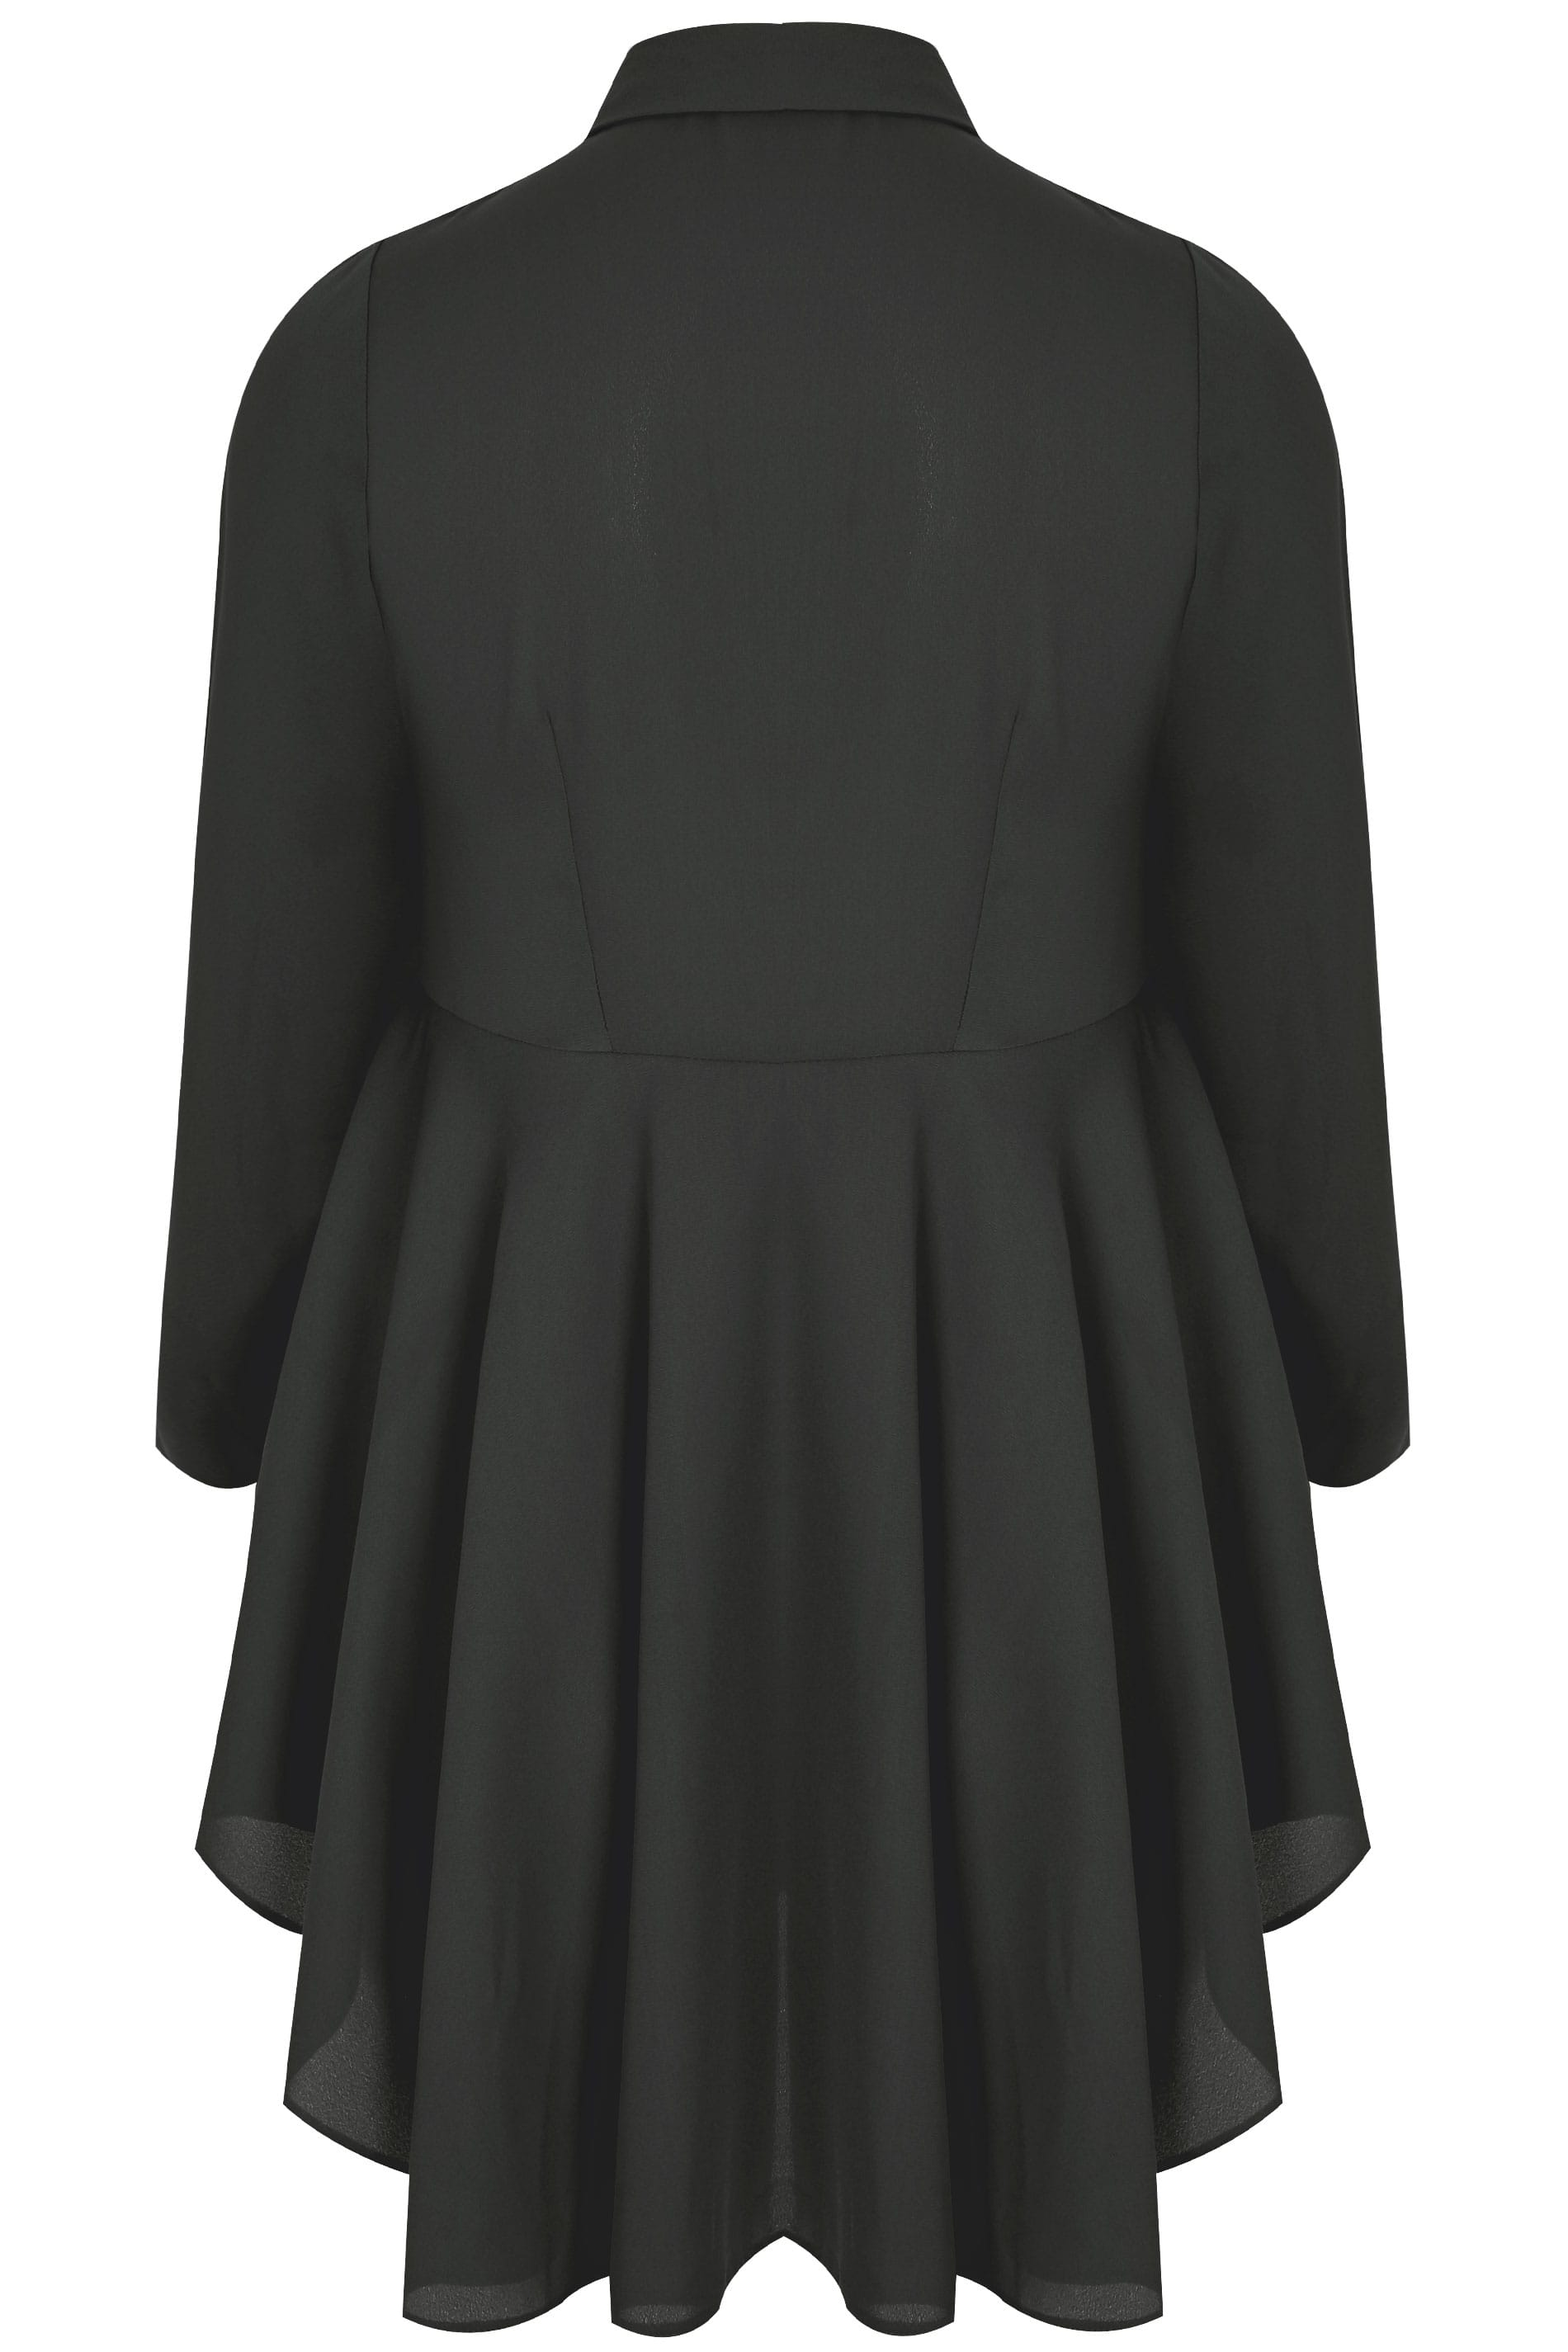 0a037bc8 YOURS LONDON Black Ruffle Shirt, Plus size 16 to 32